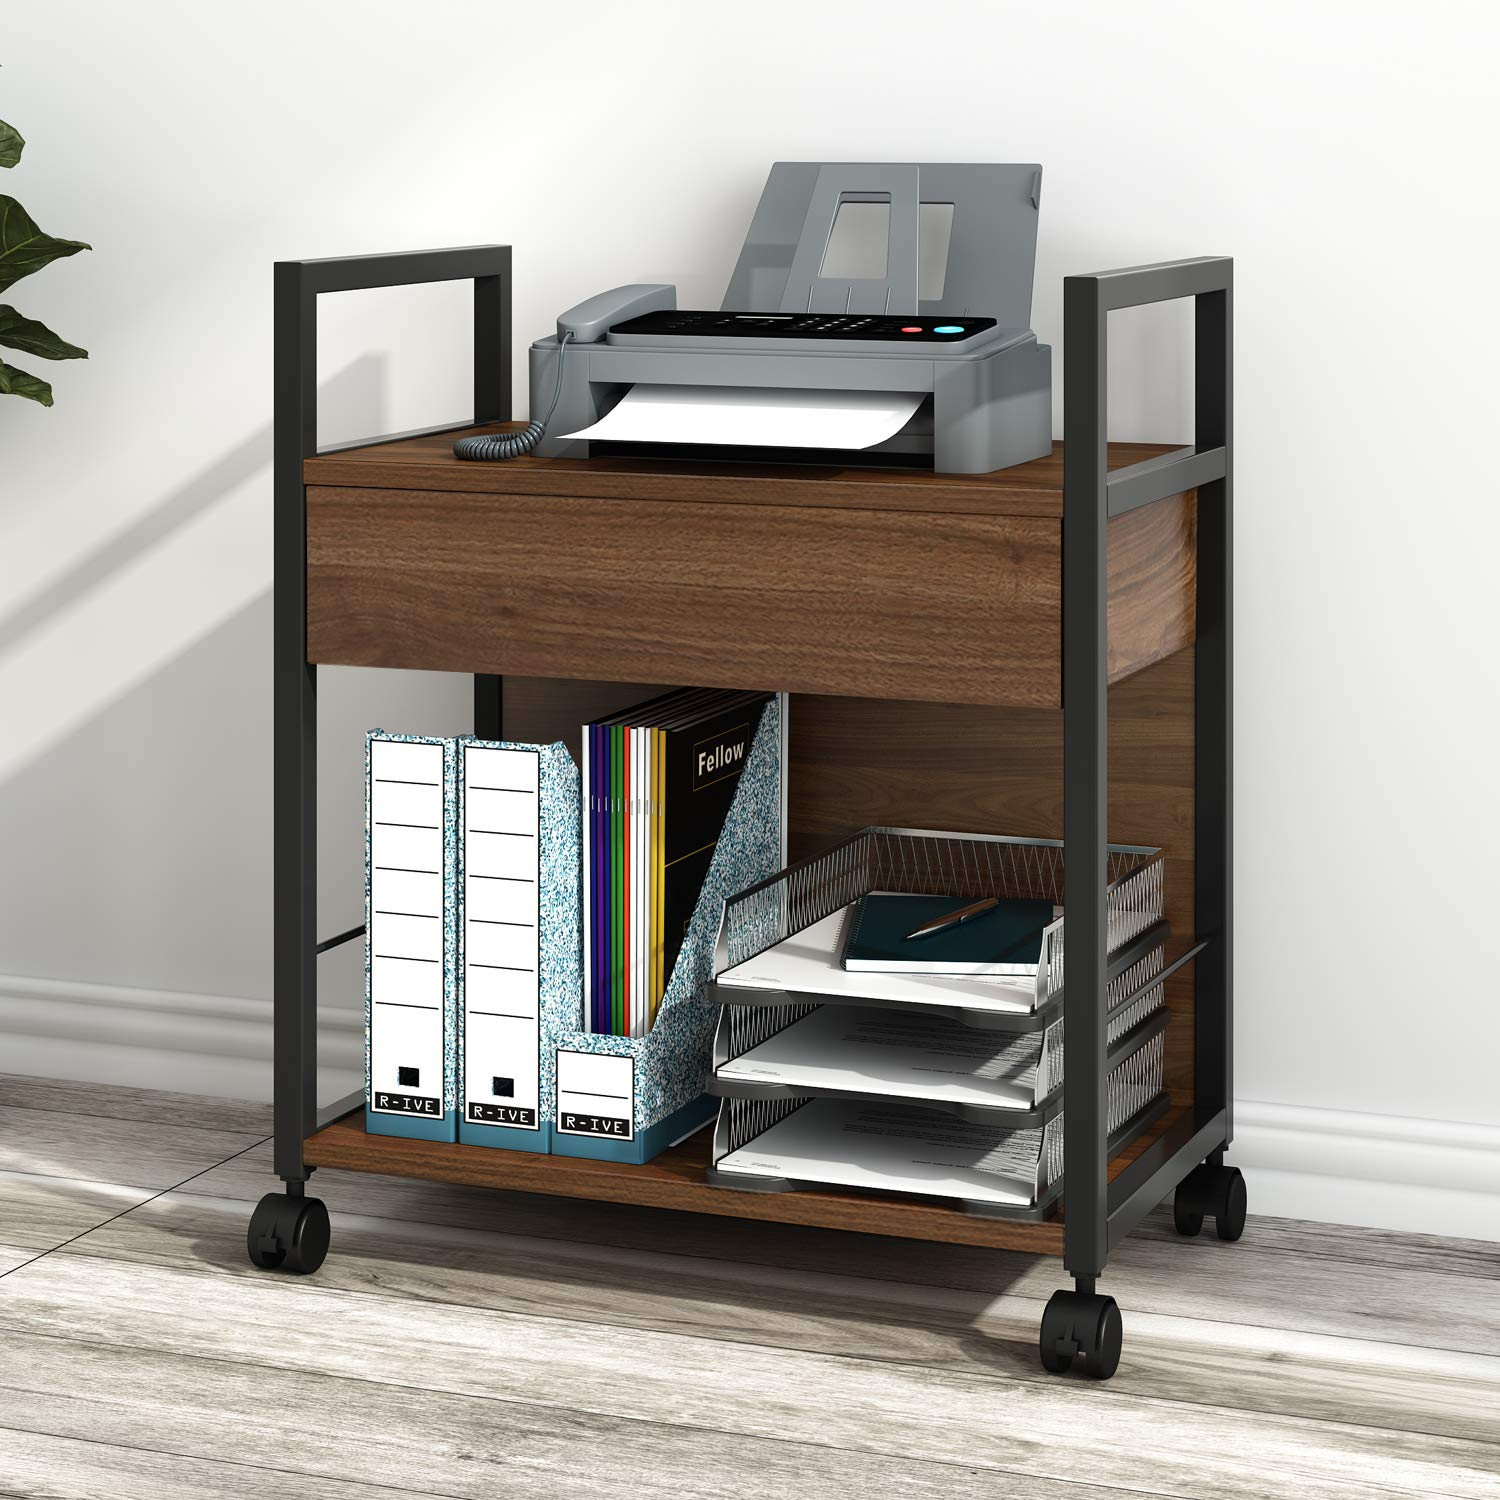 DEVAISE Printer Cart with Storage Shelf, Printer Stand on Wheels for Home Office by DEVAISE